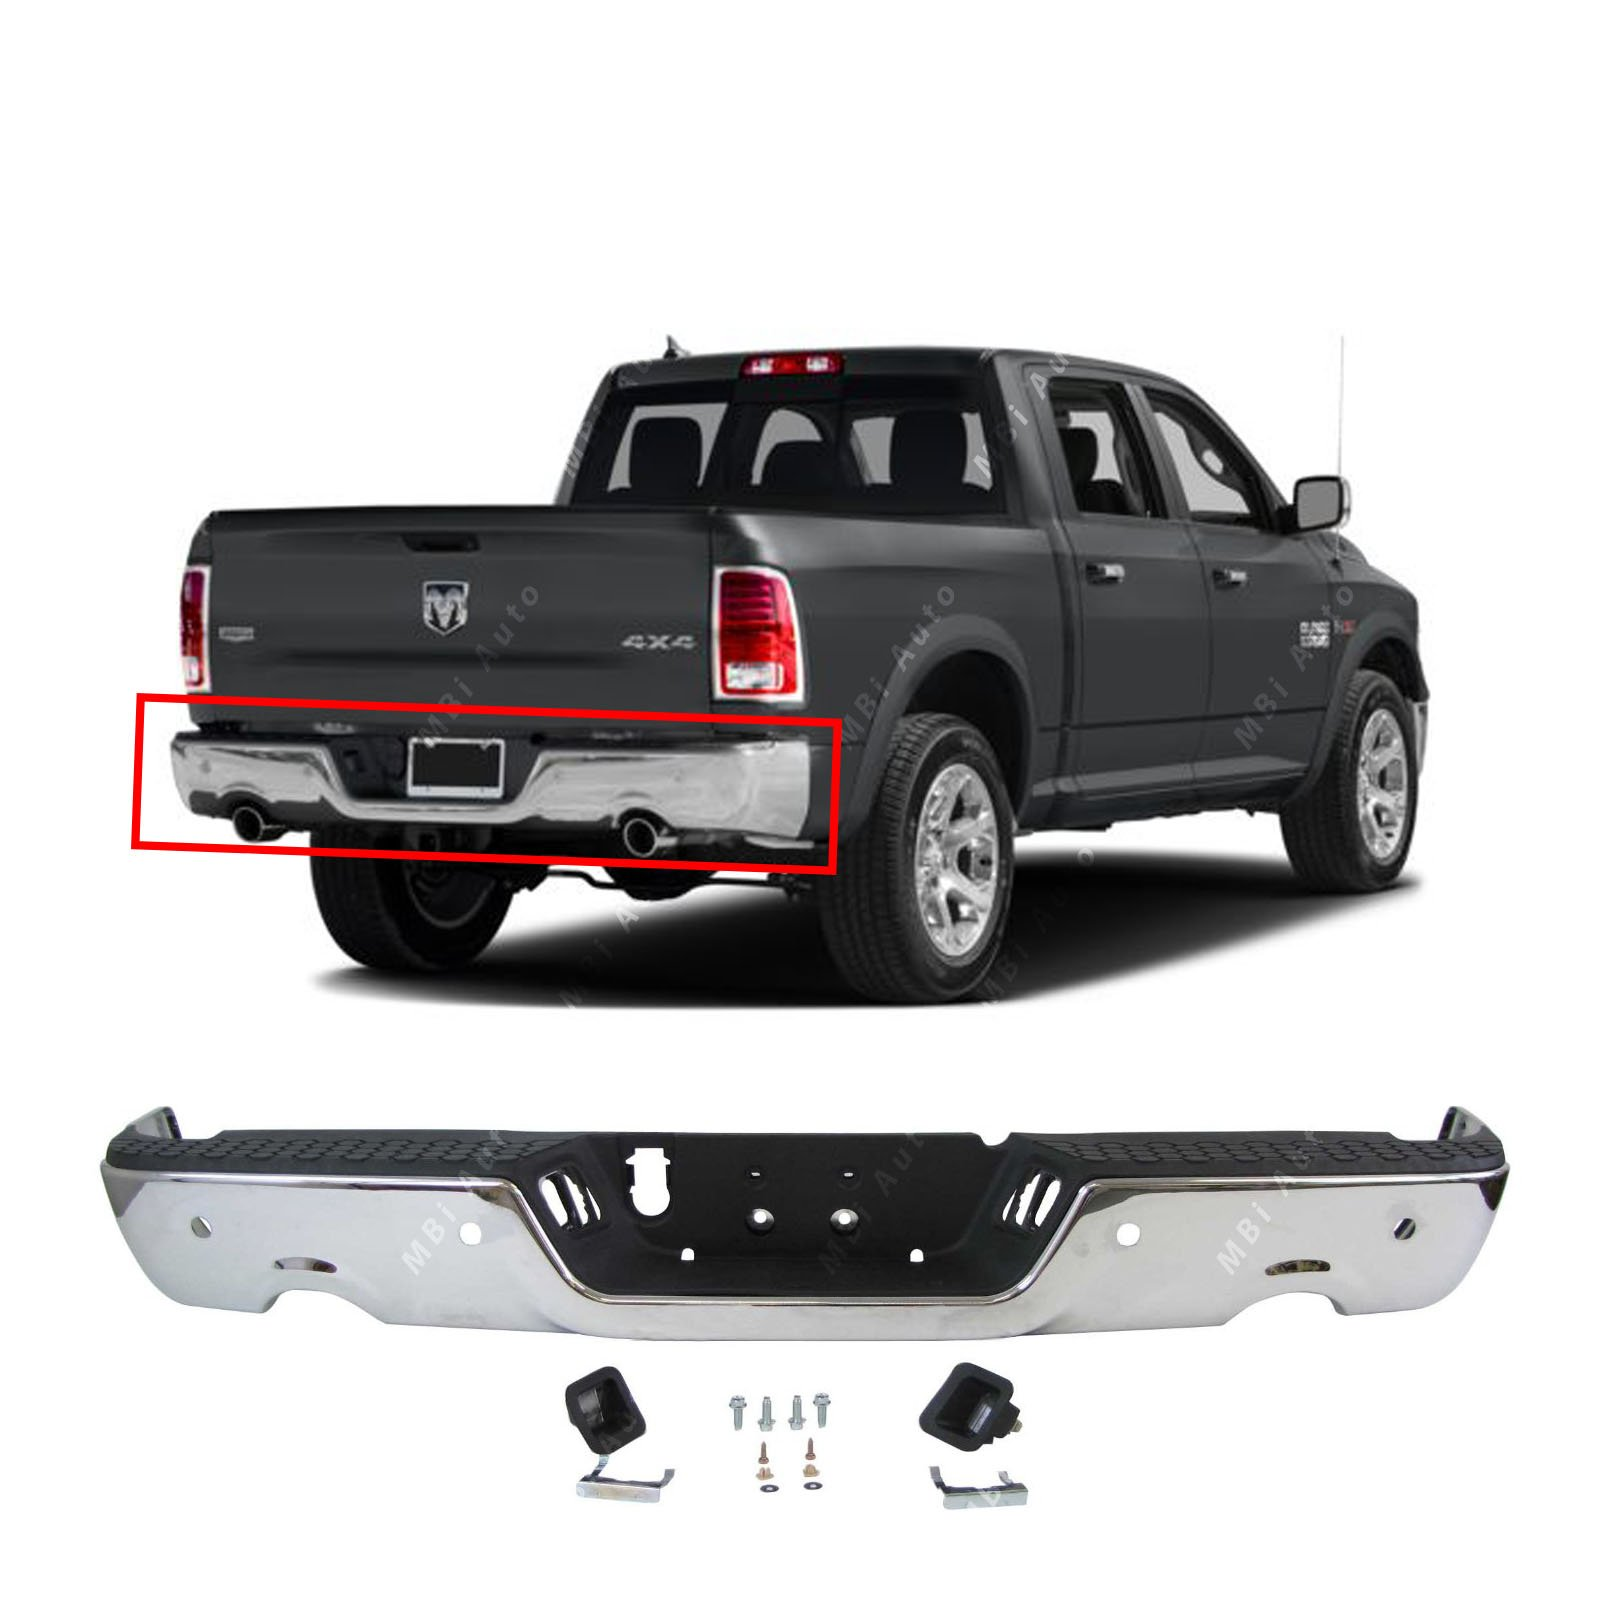 MBI AUTO - Steel Chrome, Complete Rear Step Bumper Assembly for 2009-2018 Dodge RAM 1500 W/Park 09-18, CH1103119